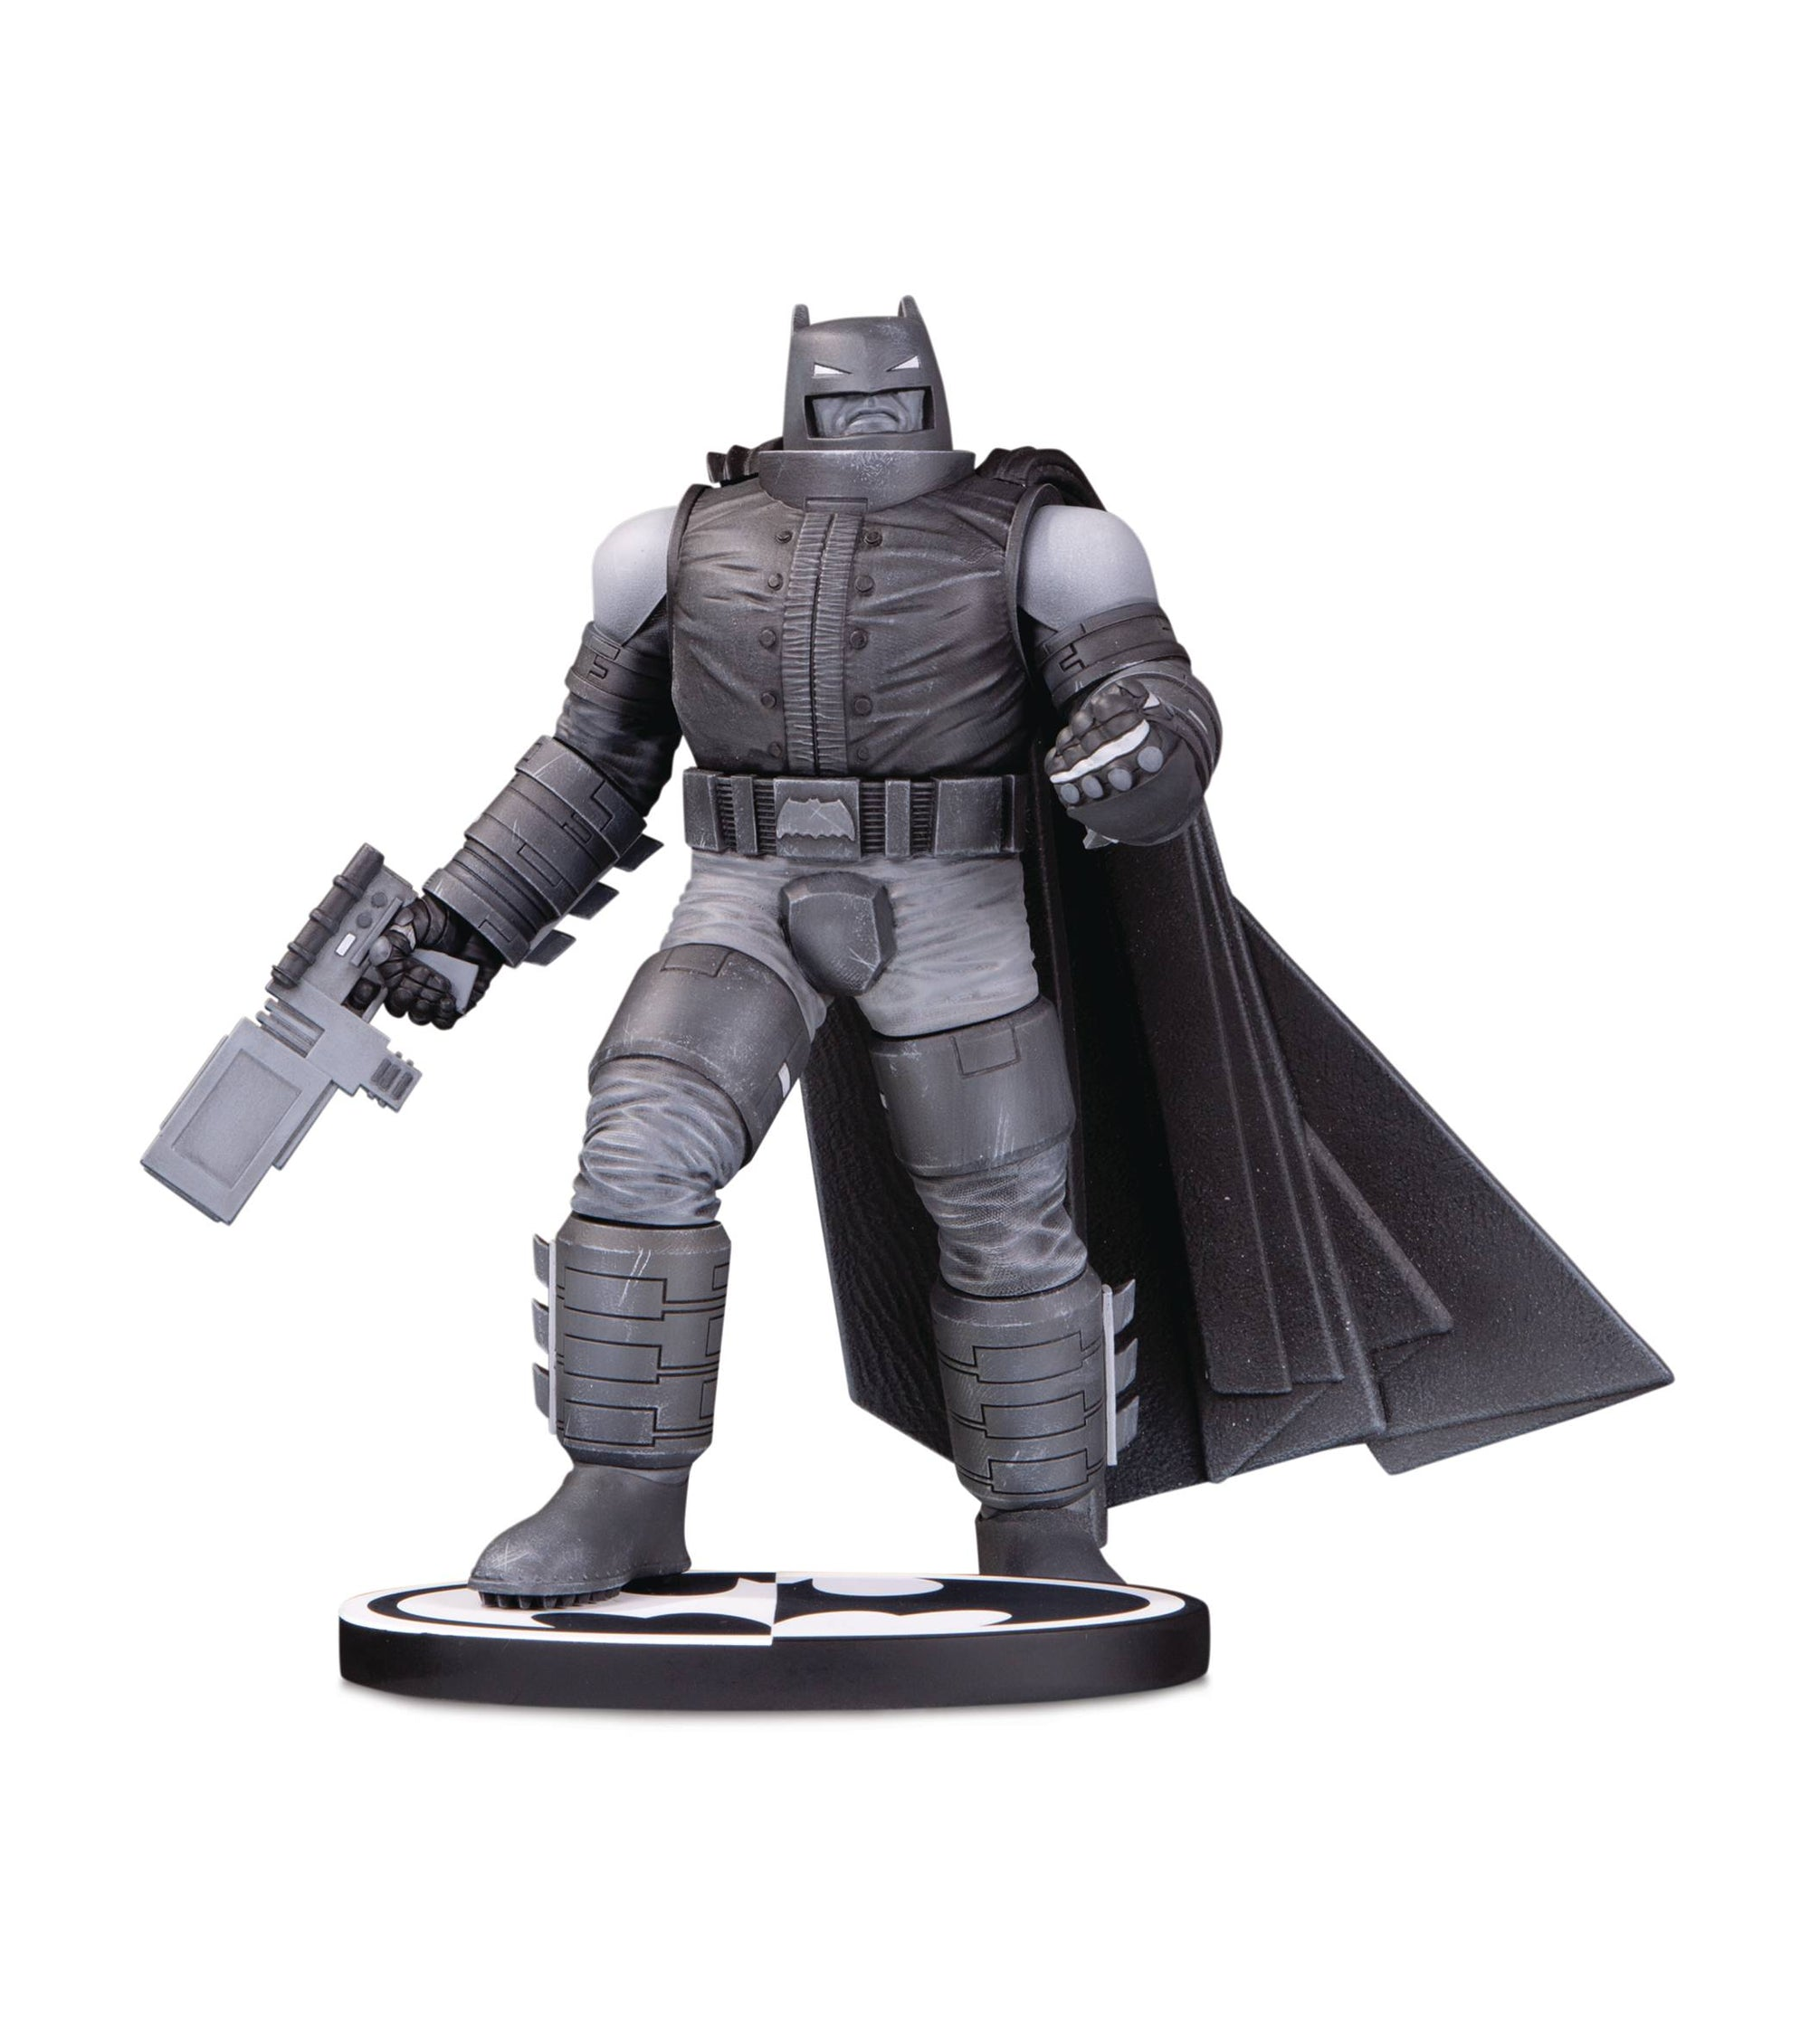 Batman Black & White Frank Miller Armored Batman Statue by DC Collectibles